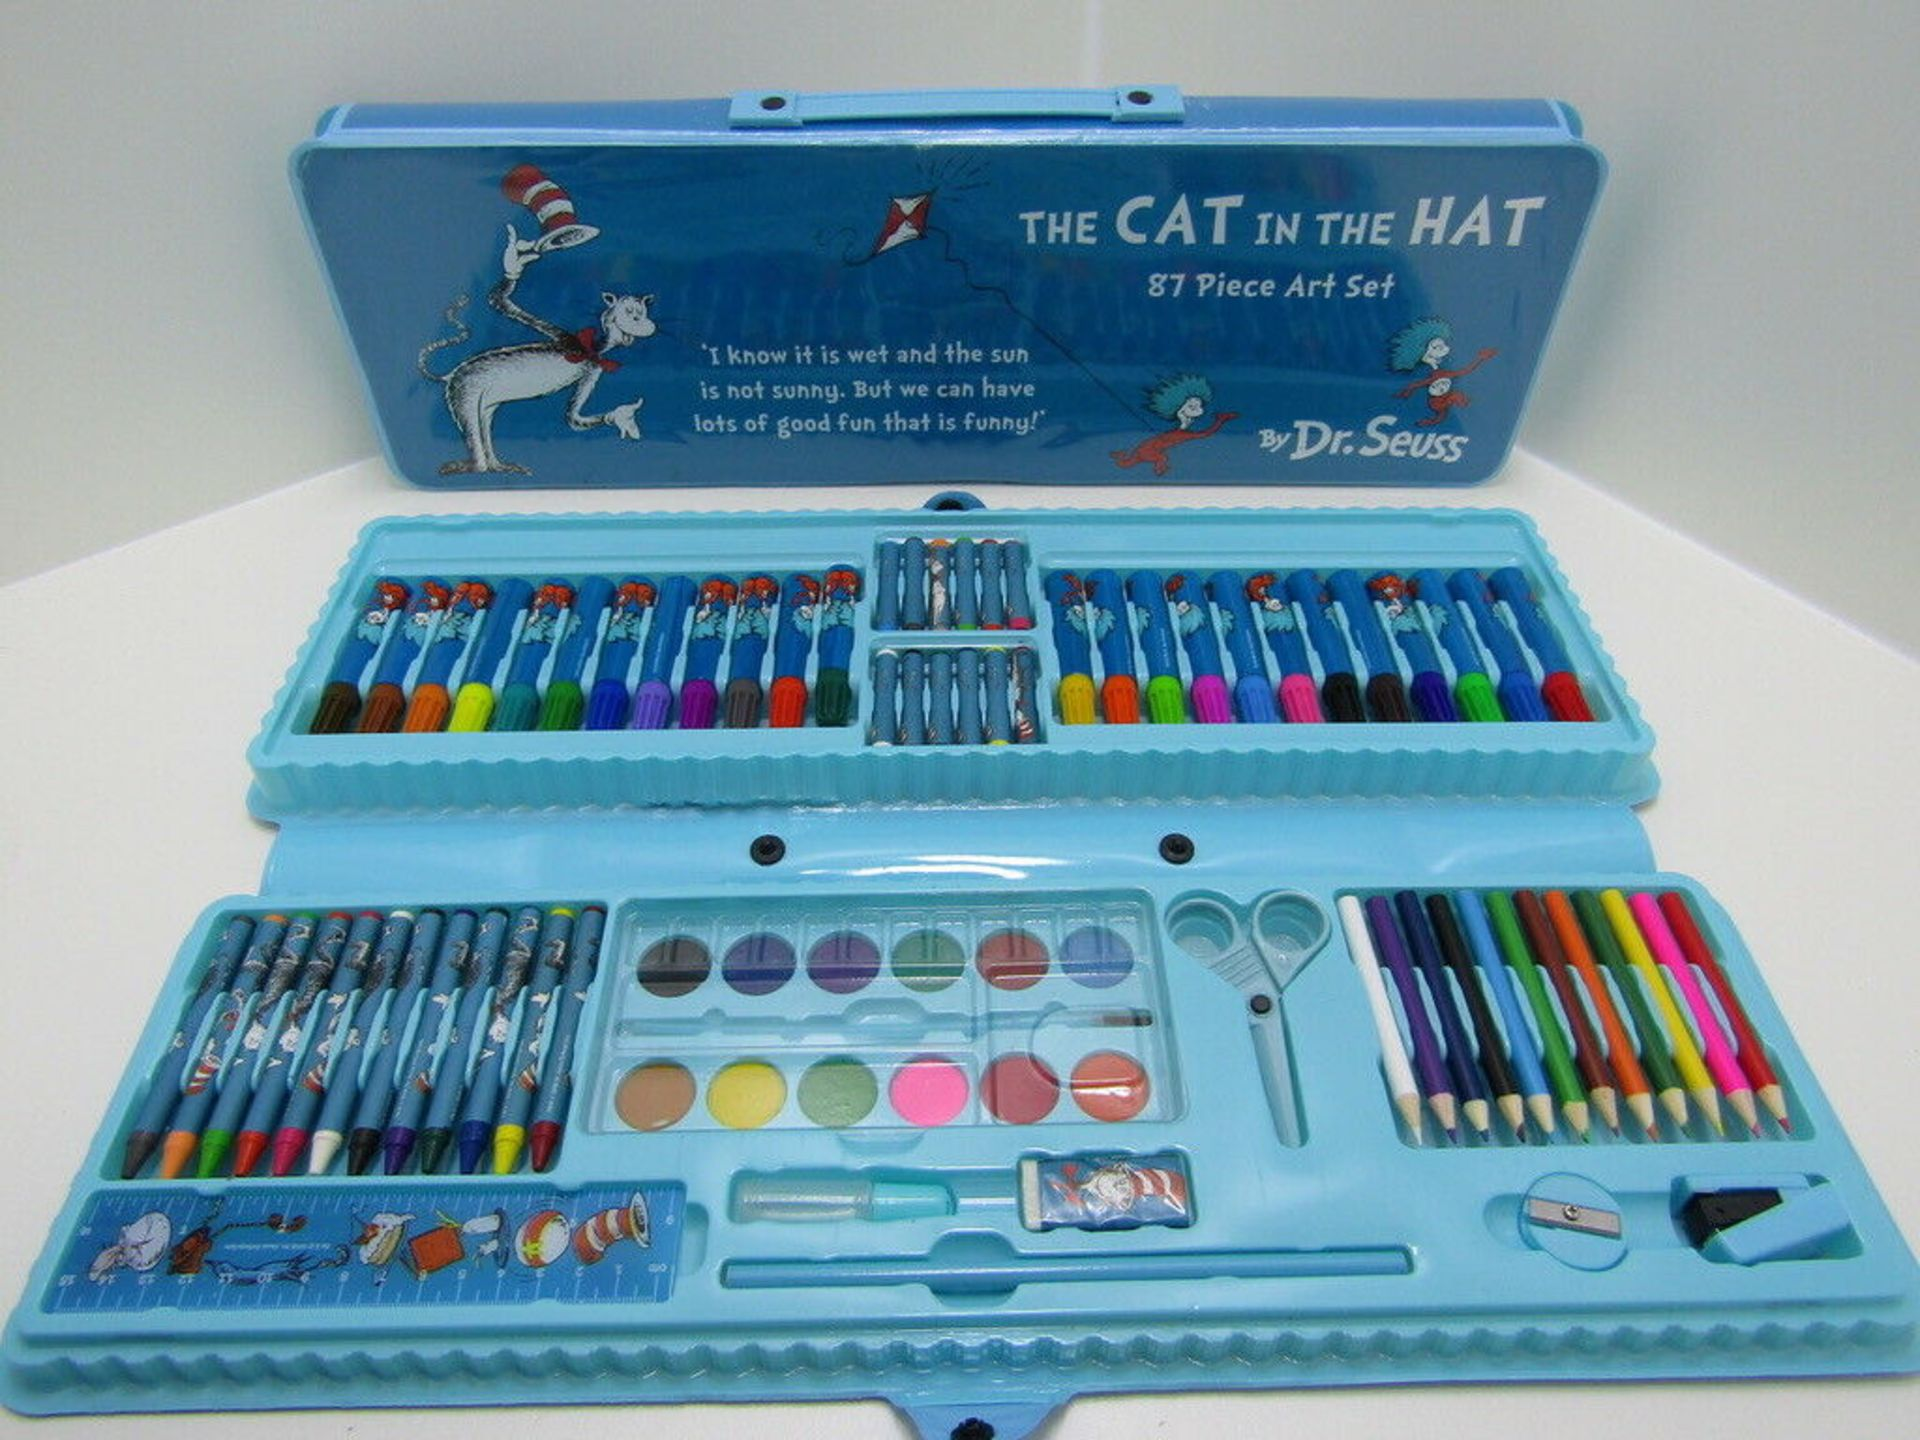 Lot 14 - 10 x 87 piece Art Set Cat in the Hat. Dr. Seuss. no vat on hammer.You will get 10 of these.Set